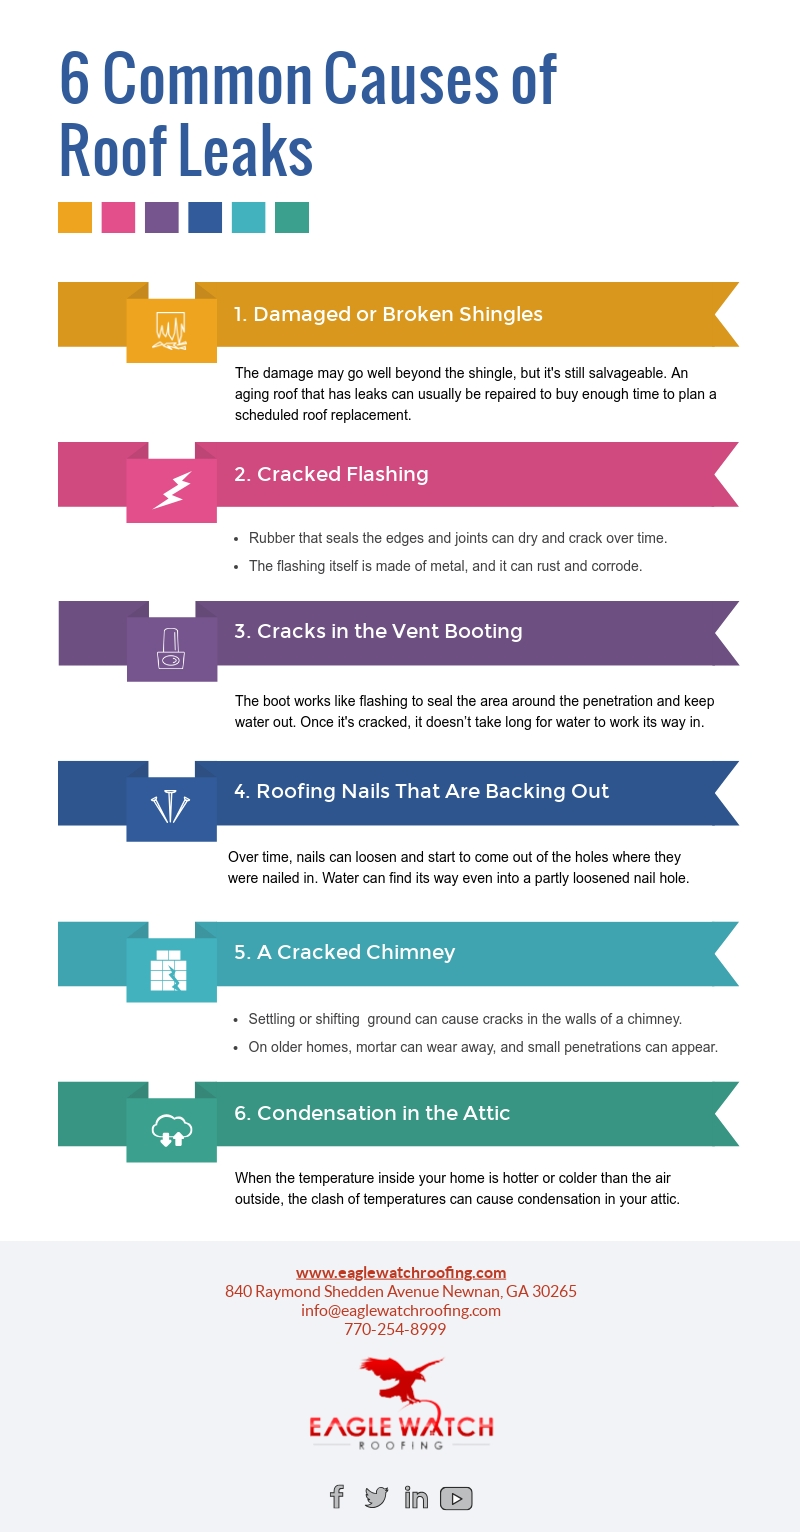 6 Common Causes of Roof Leaks [infographic]